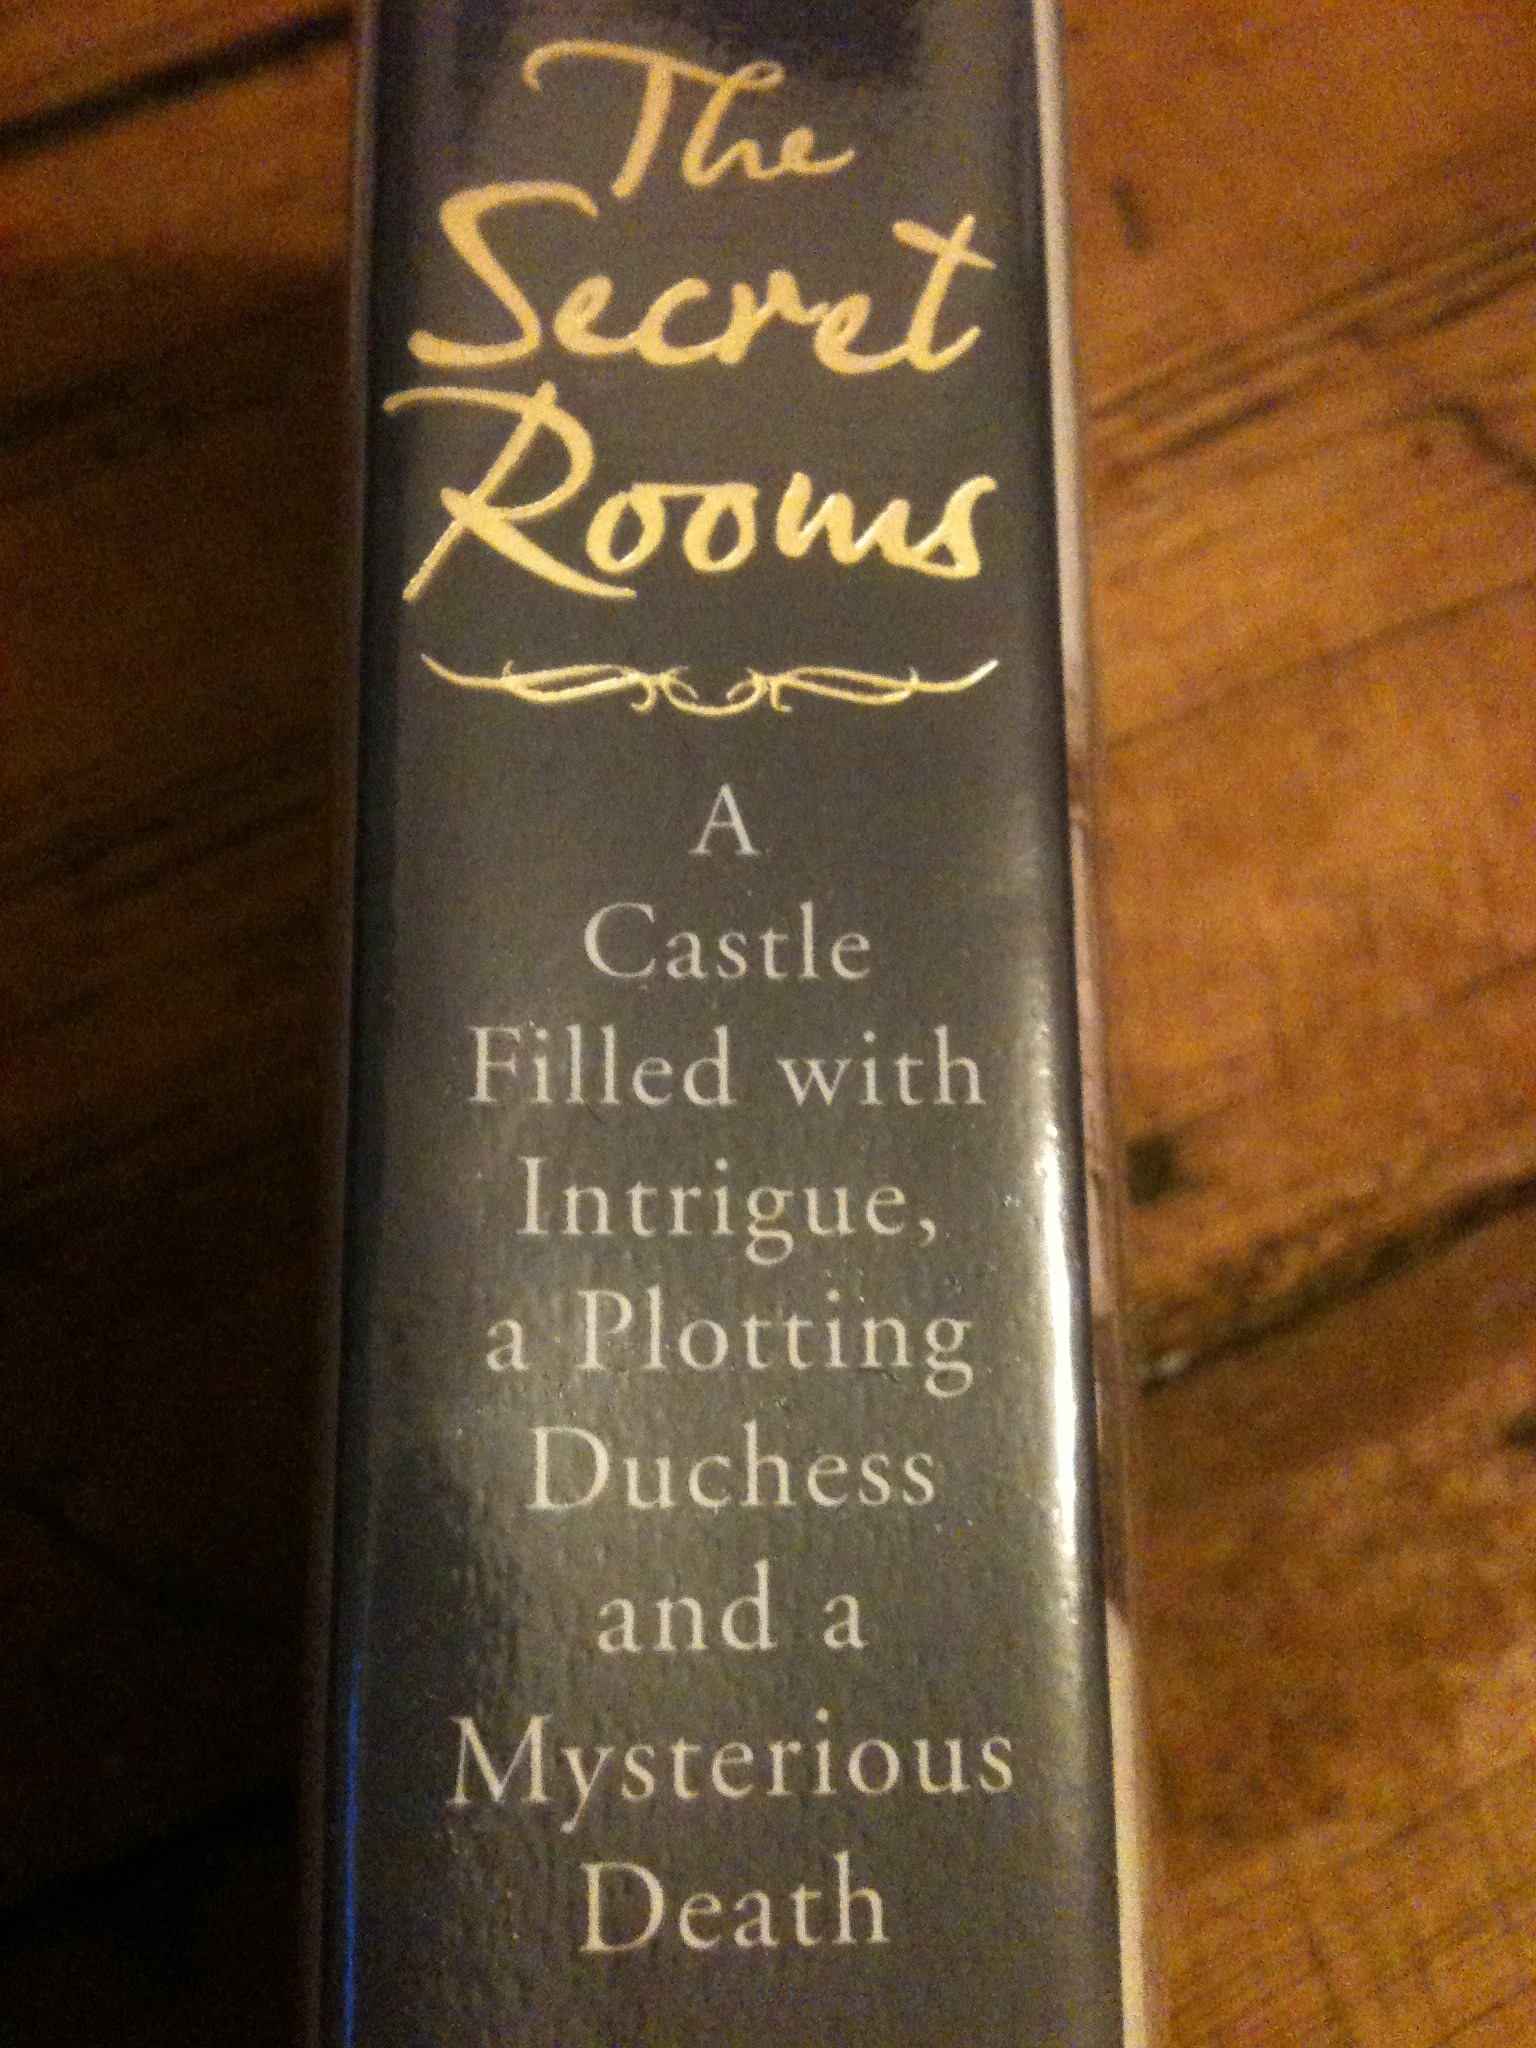 Stationery, letters and literature: The Secret Rooms by Catherine Bailey